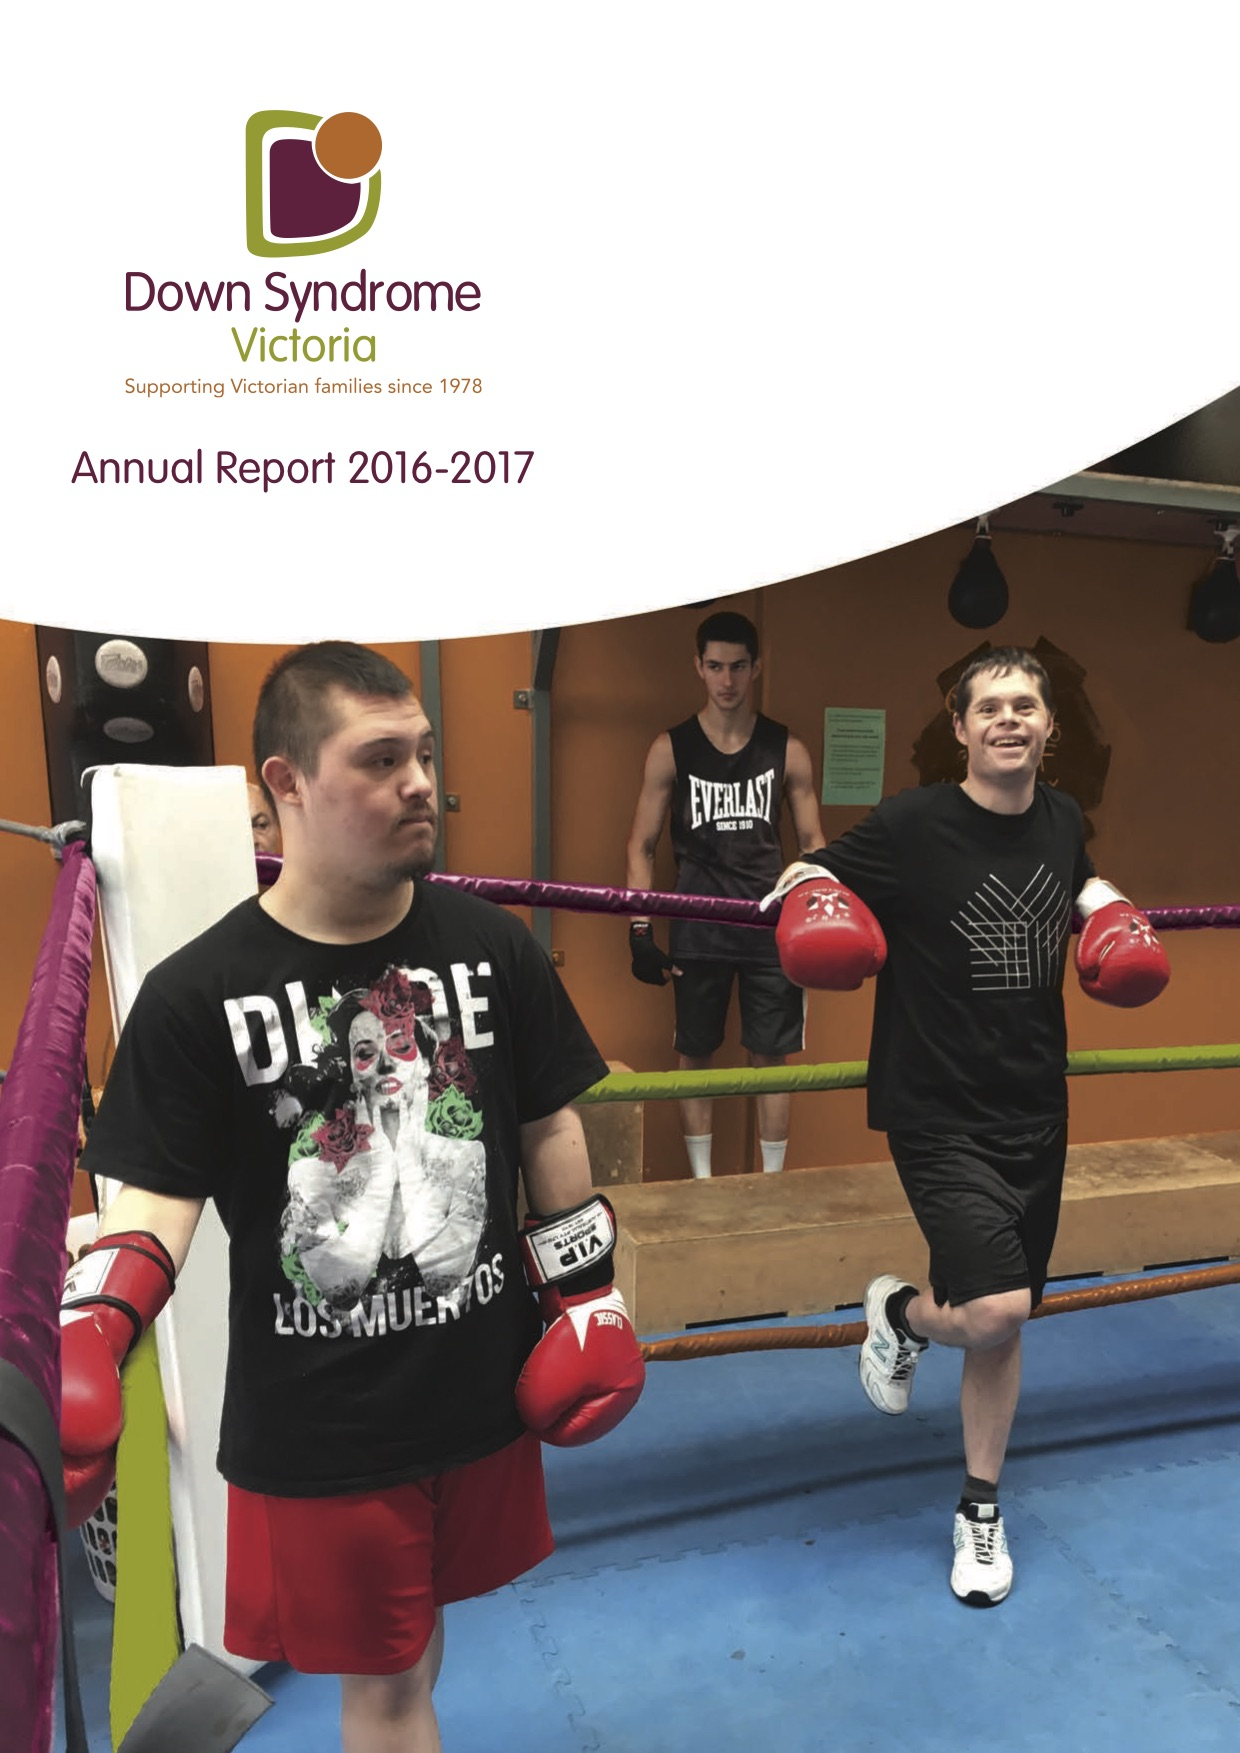 Down Syndrome Victoria Annual Report 2016 to 2017